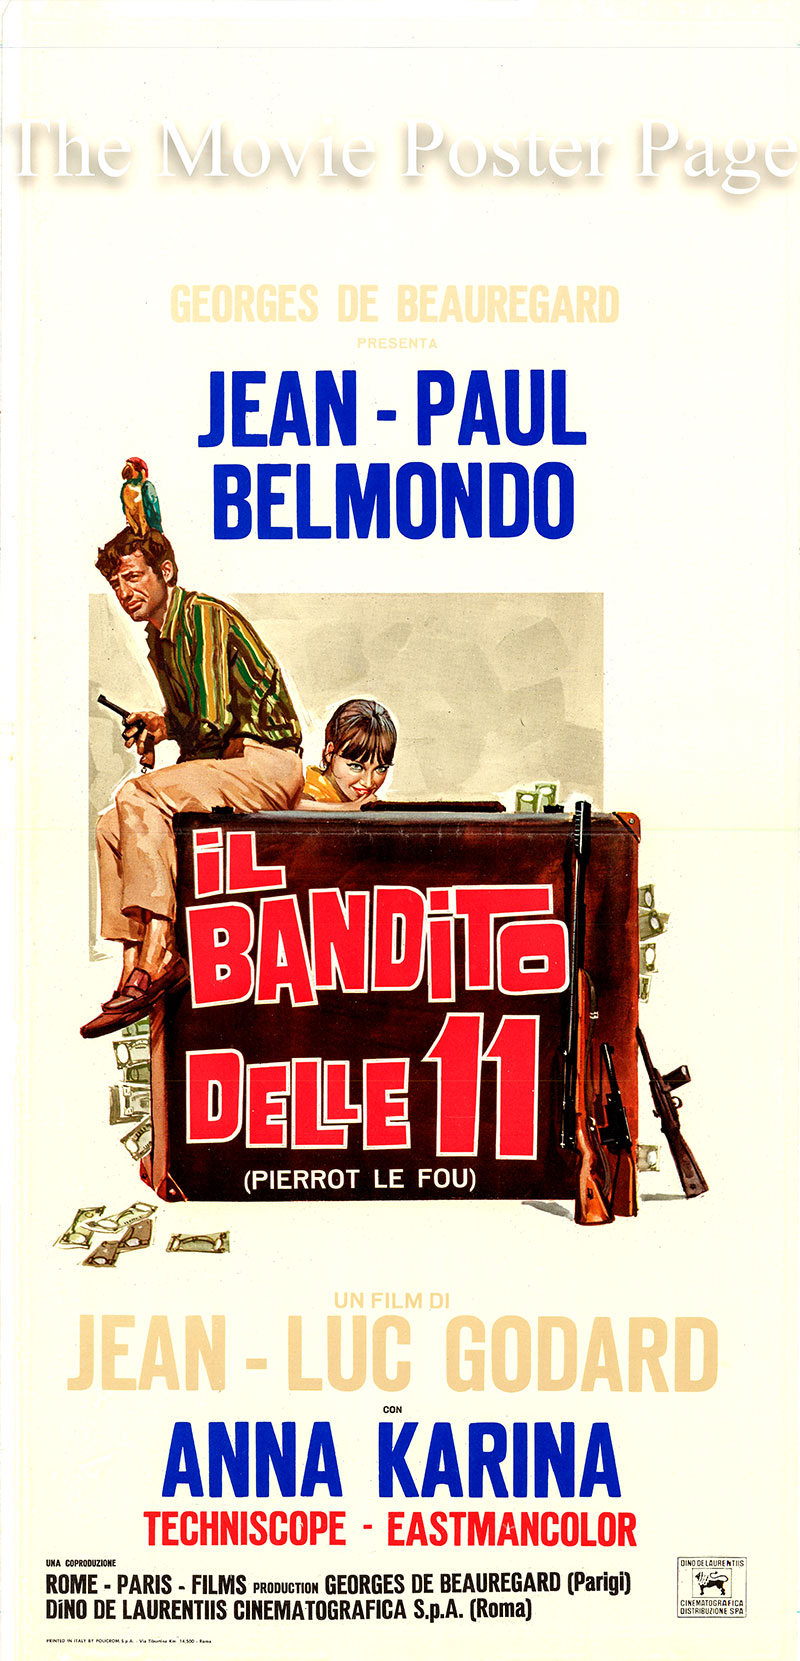 This is a 1965 Italian locandina poster for the 1965 Jean-Luc Godard film <i>Pierro le fou</i> starring Jean-Paul Belmondo as Ferdinand Griffon.